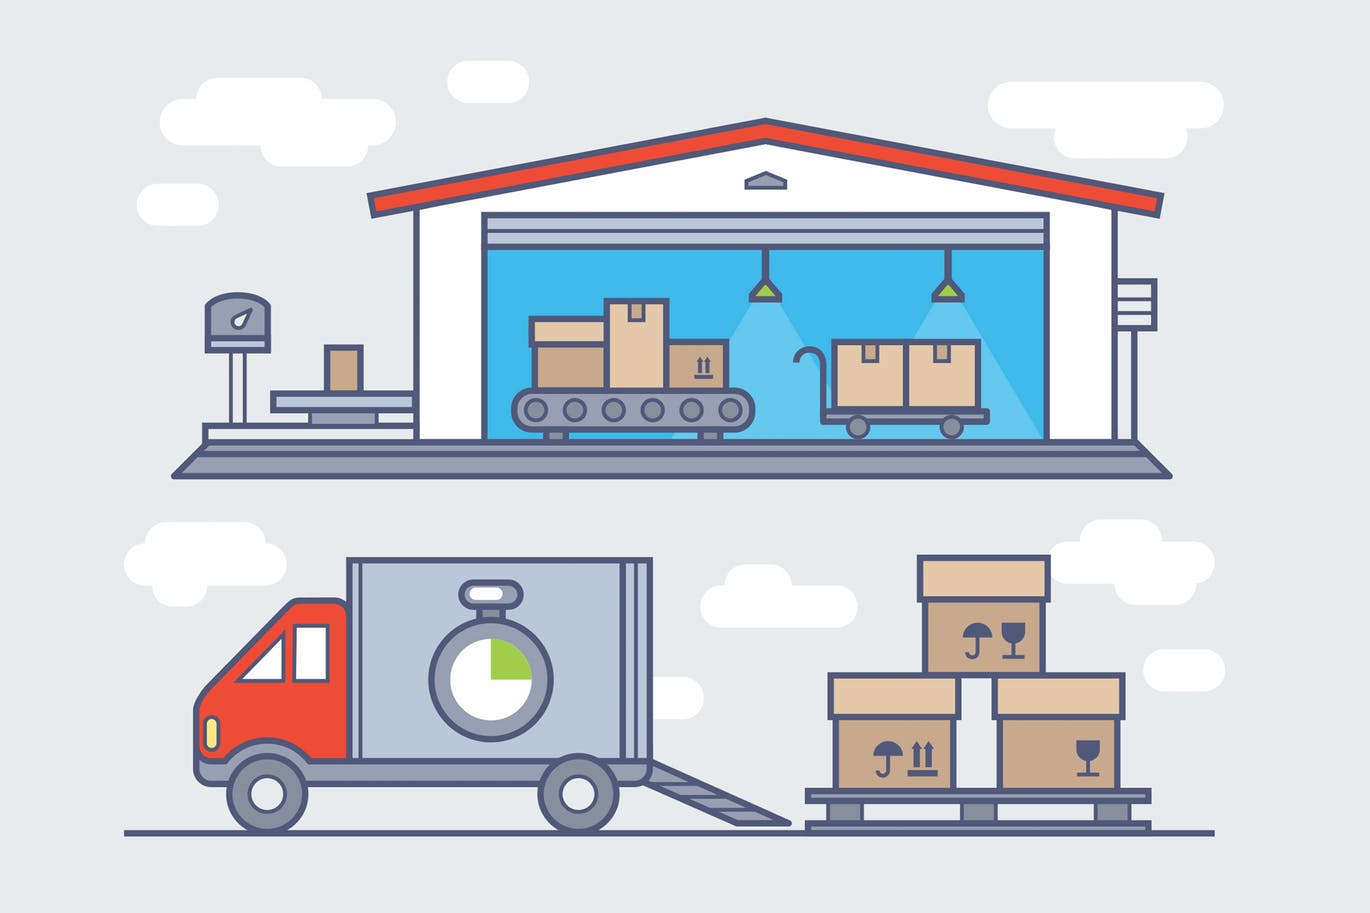 Warehouse clipart. Free download graphic dl